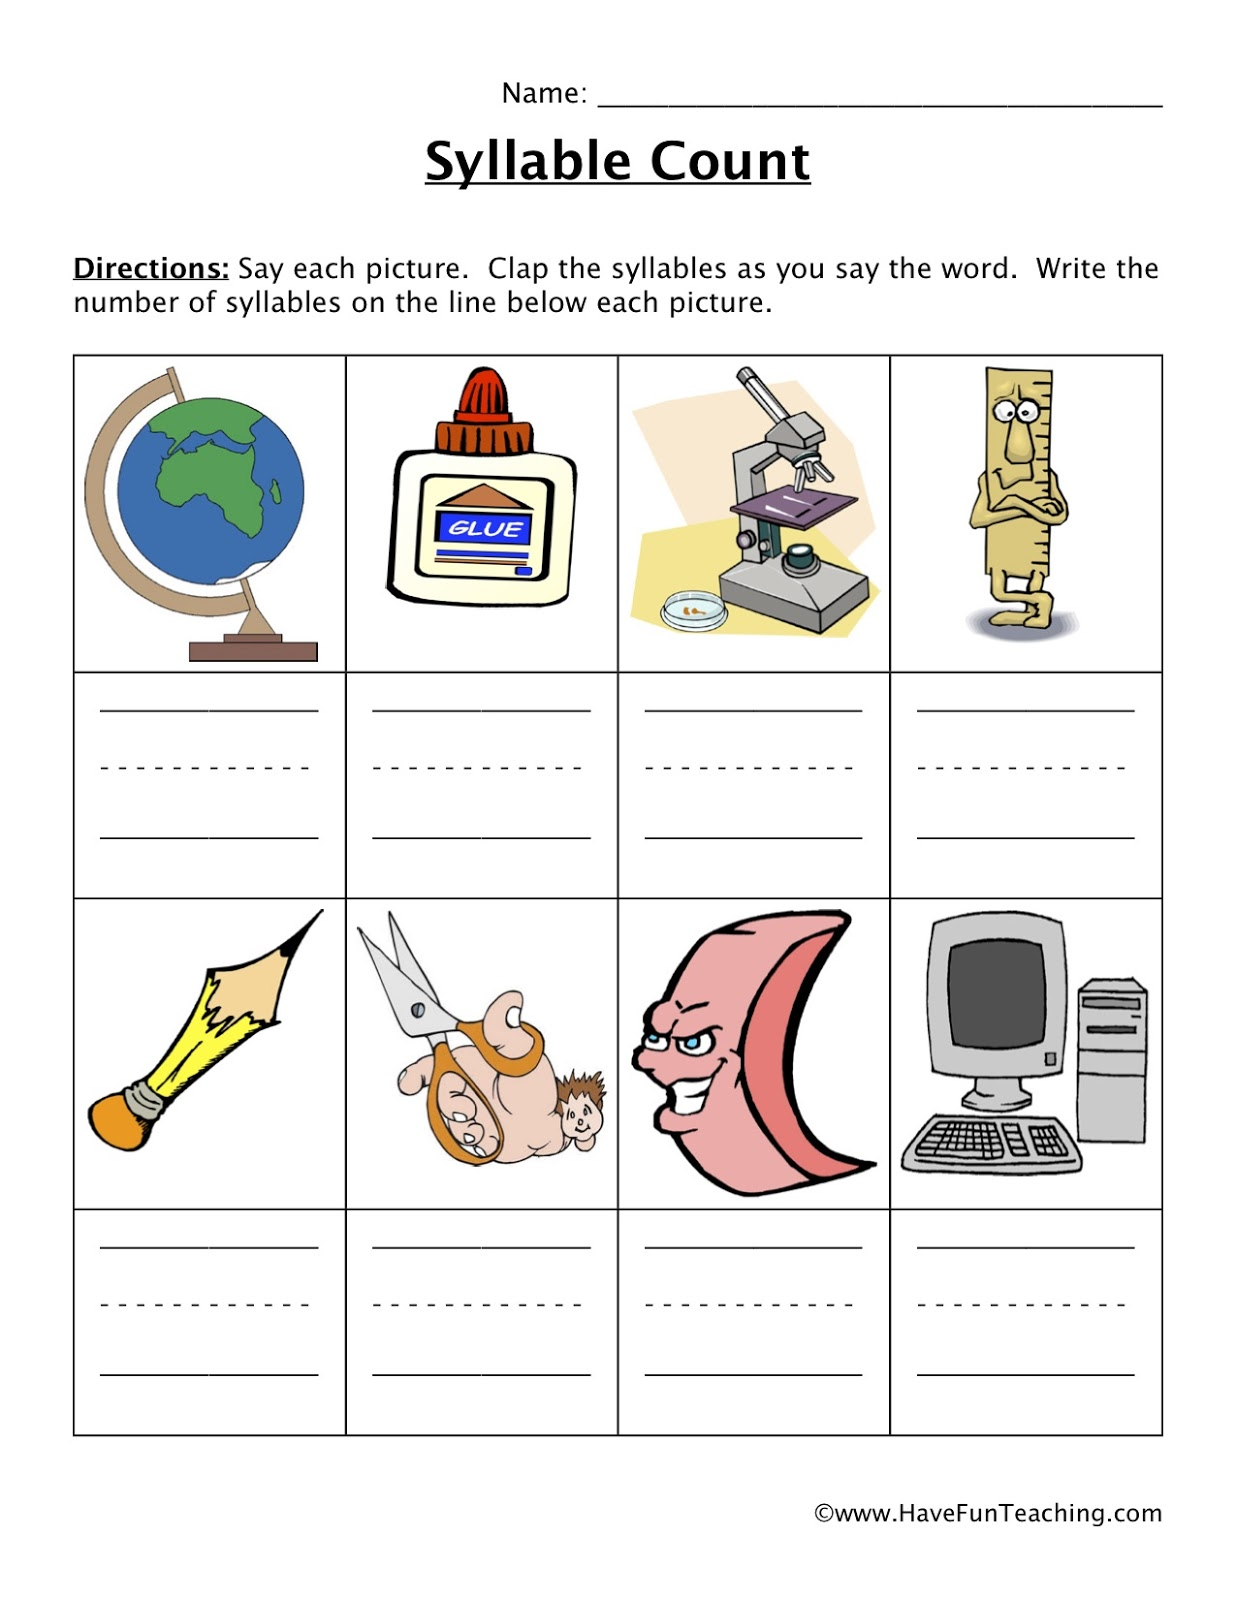 Syllable Identification Worksheet